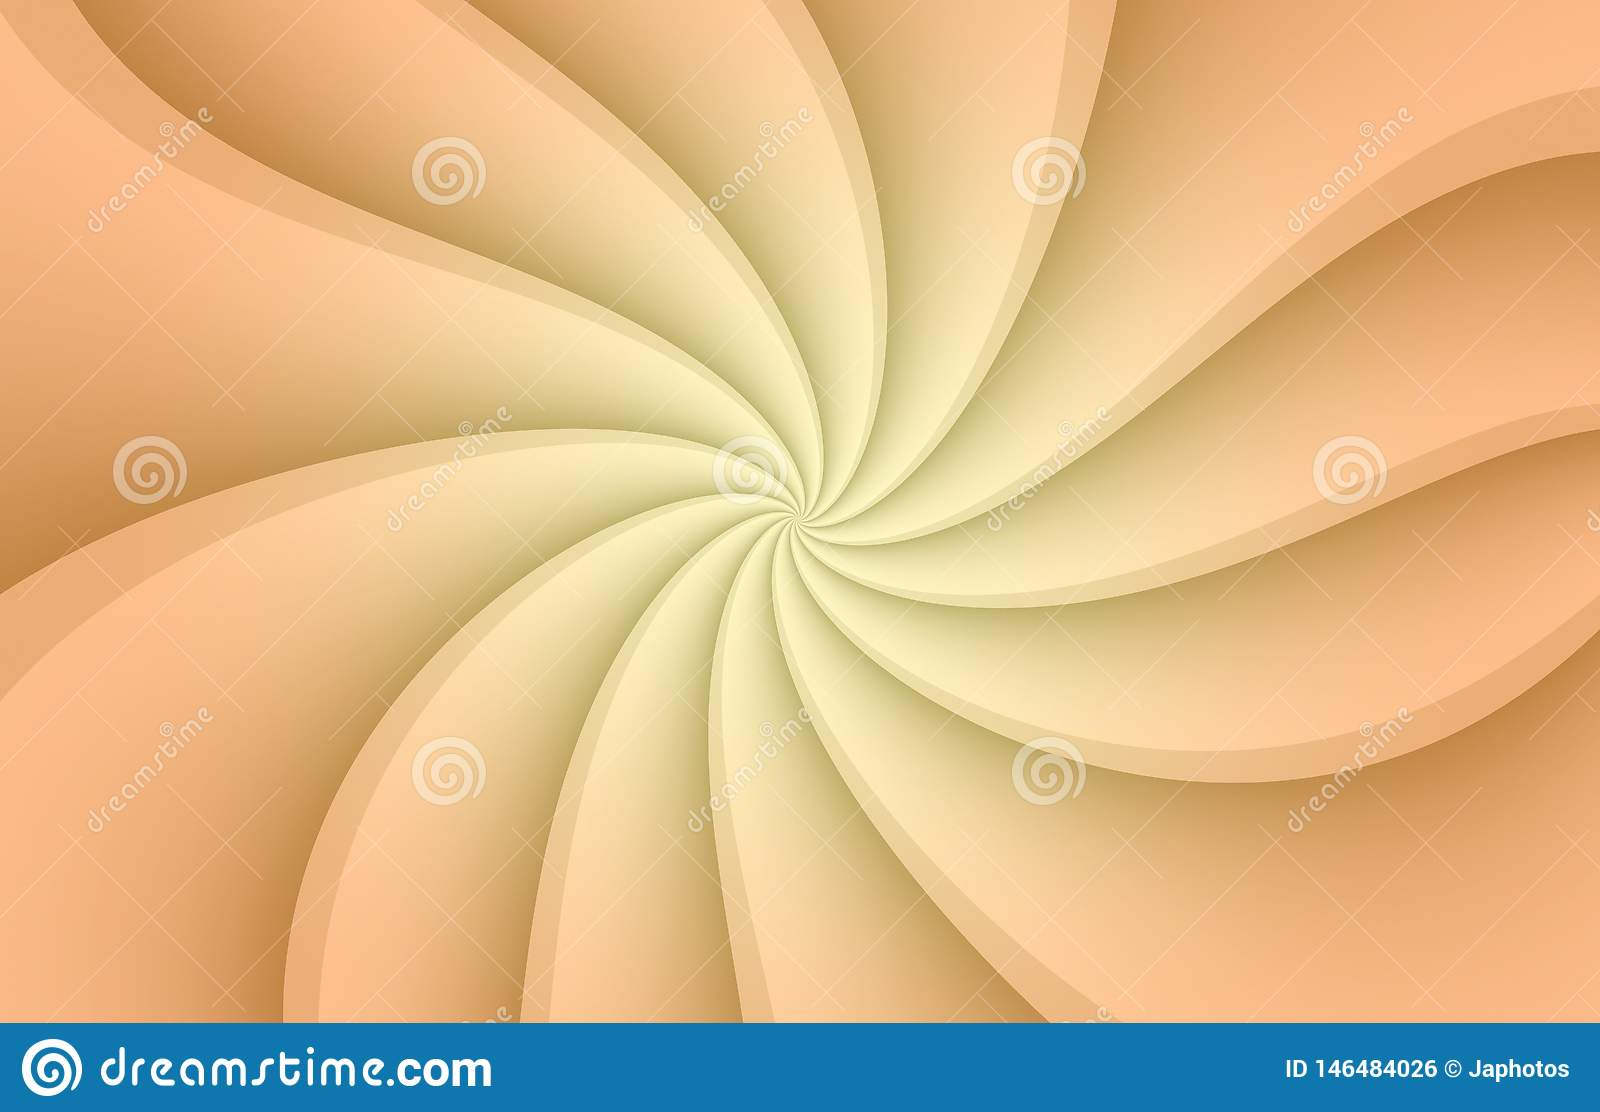 Coral peach and white spinning spiral curves abstract wallpaper background illustration.